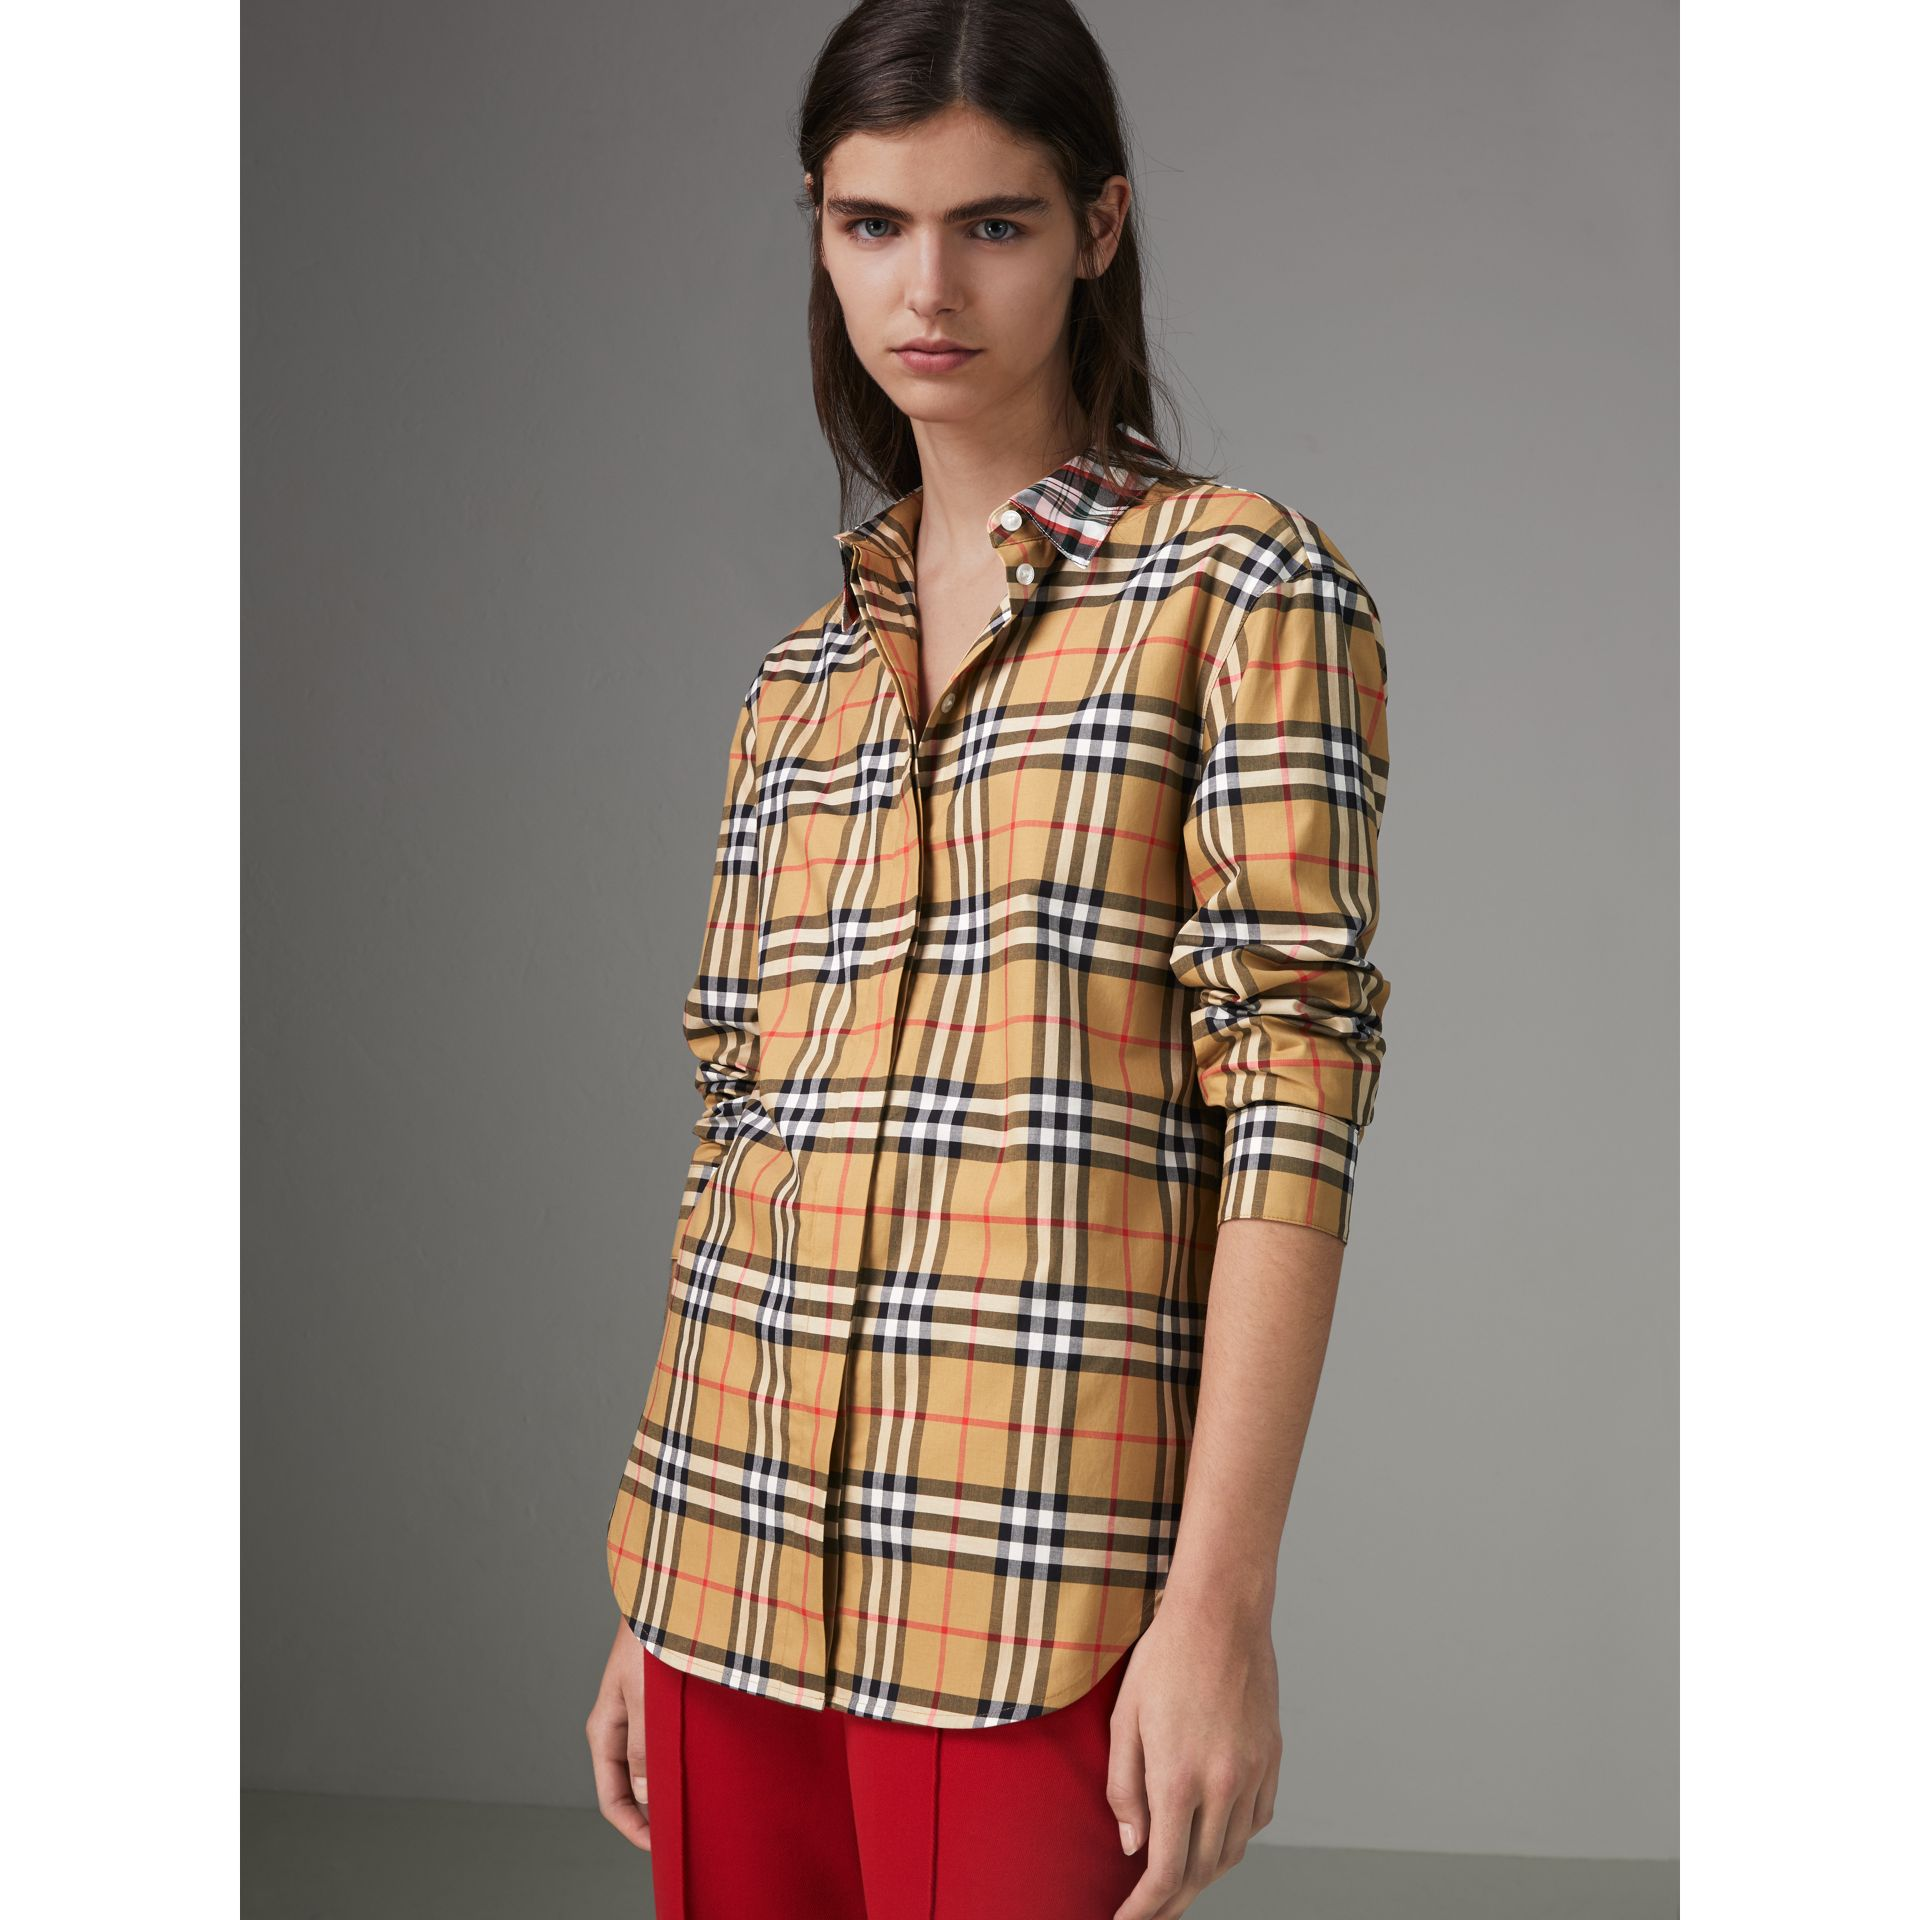 Contrast Check Cotton Shirt in Antique Yellow - Women | Burberry - gallery image 4